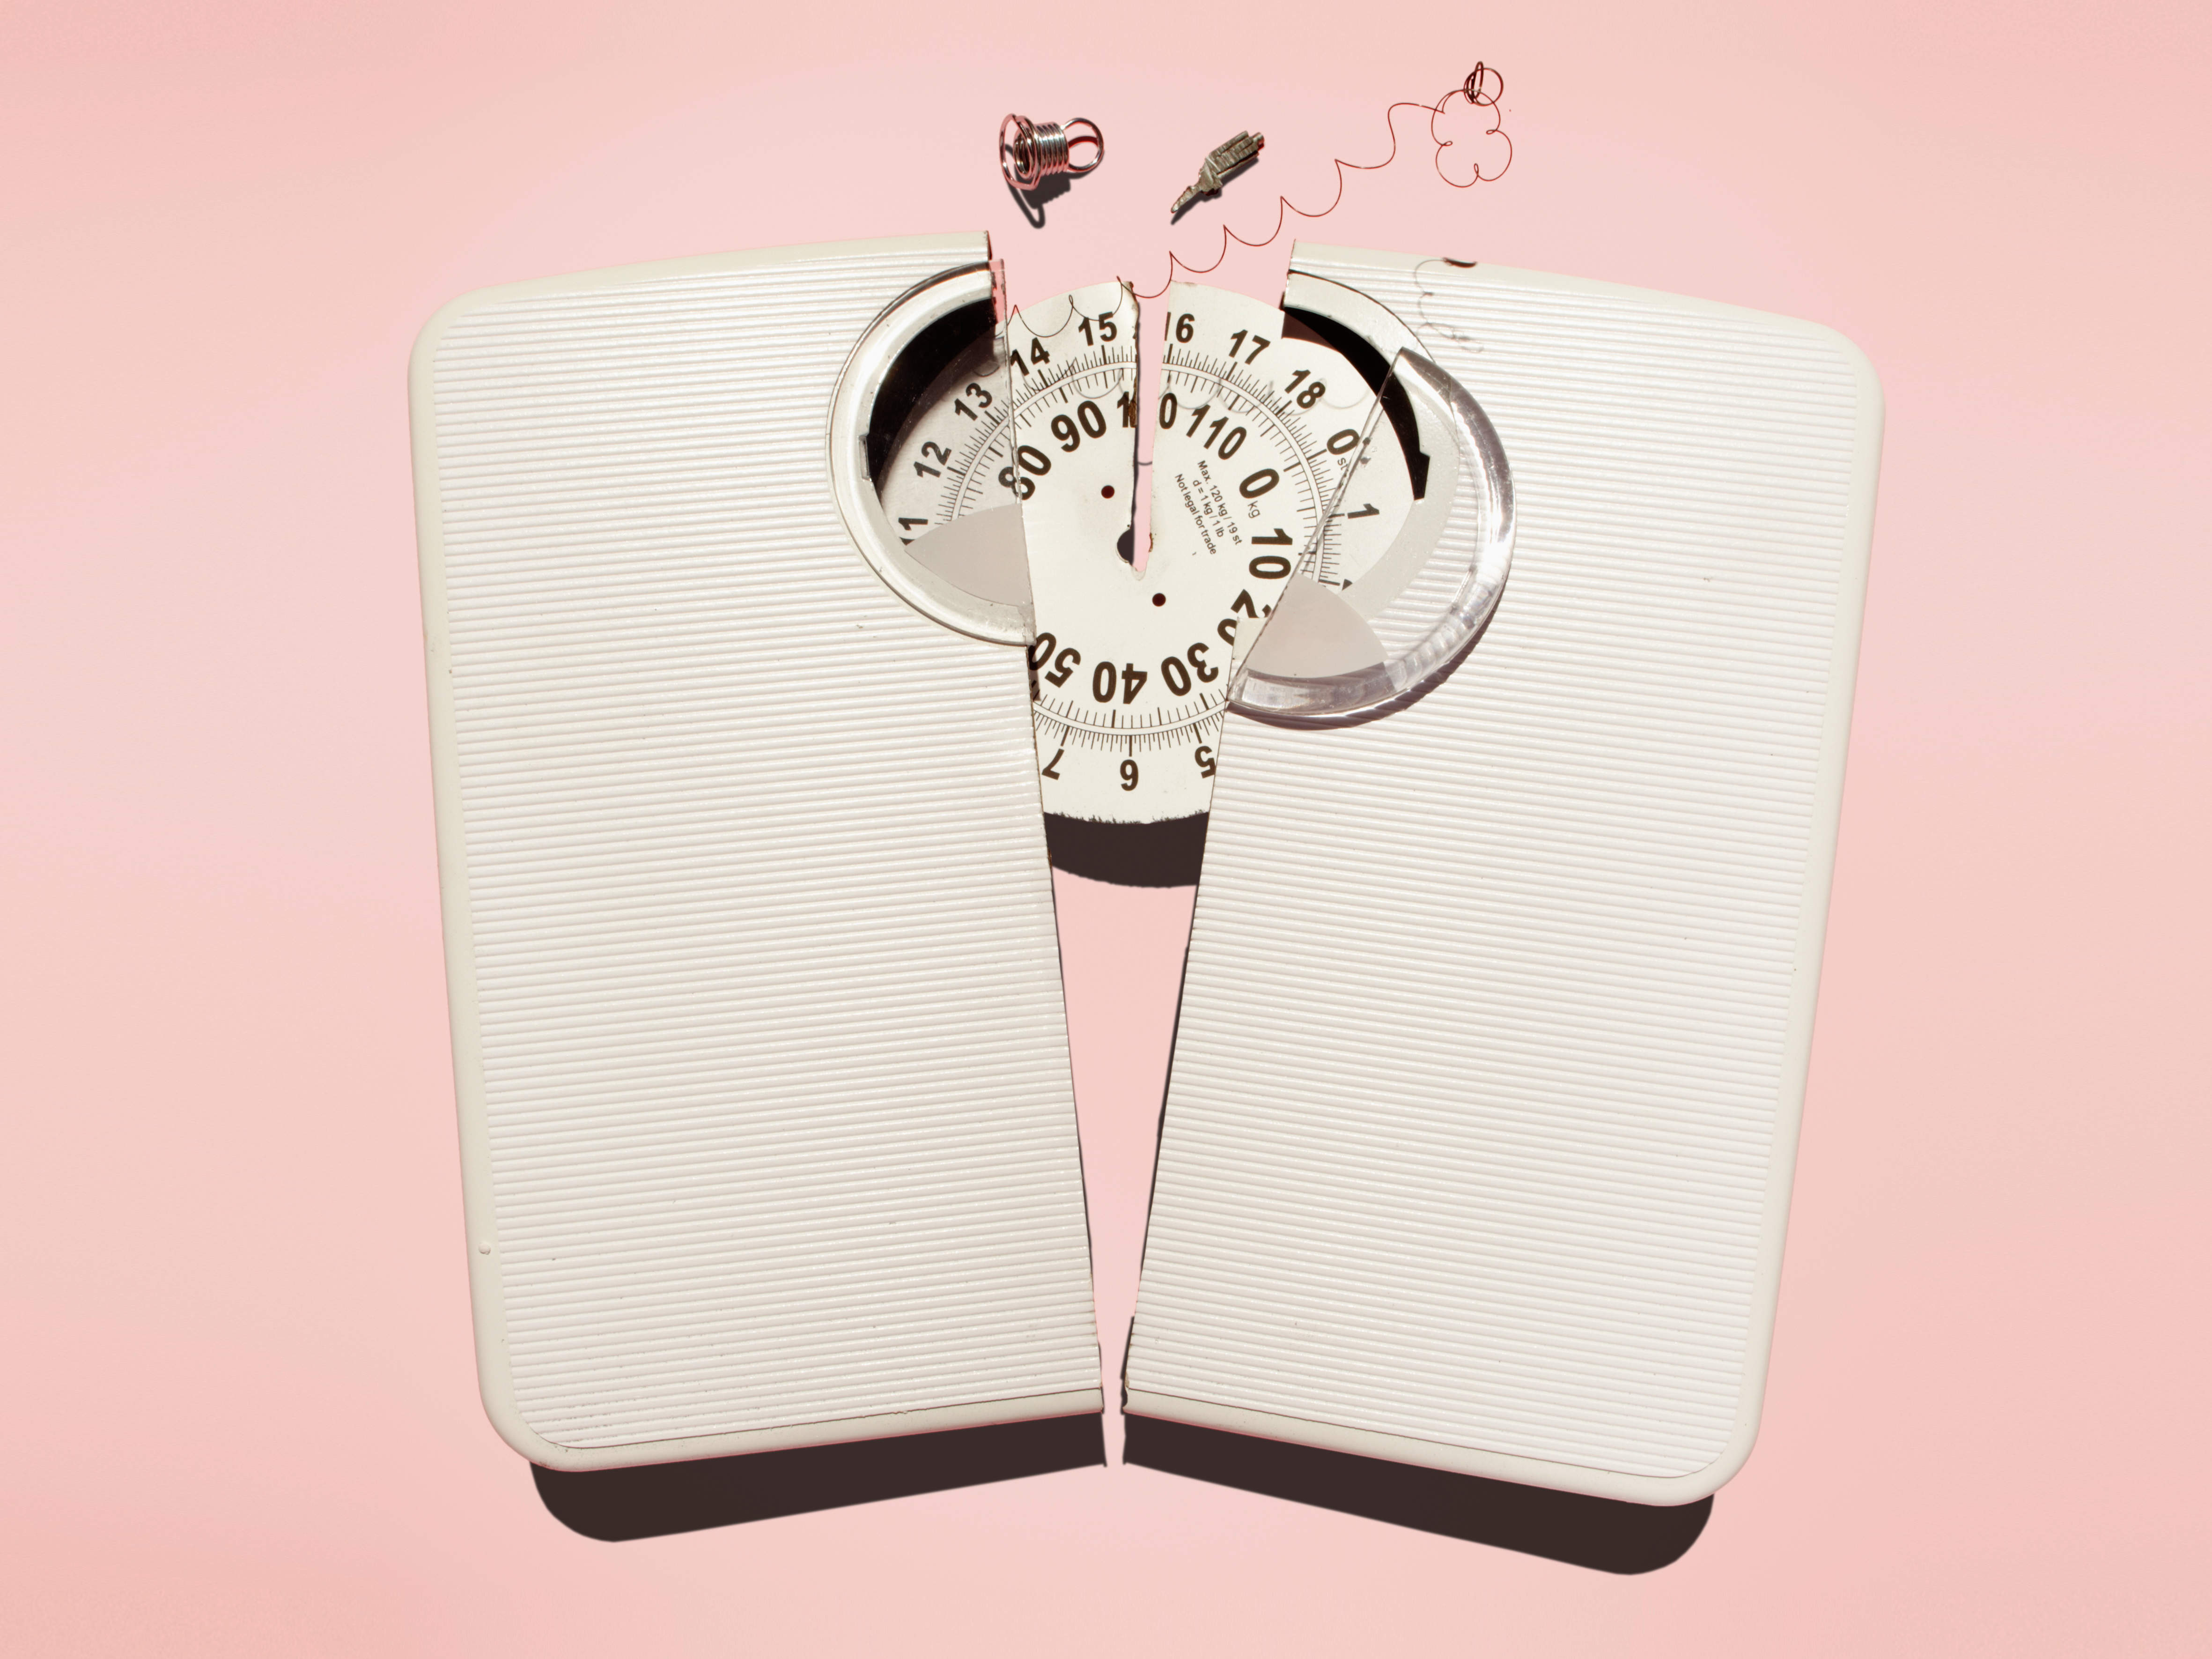 ways to get past weight loss plateau